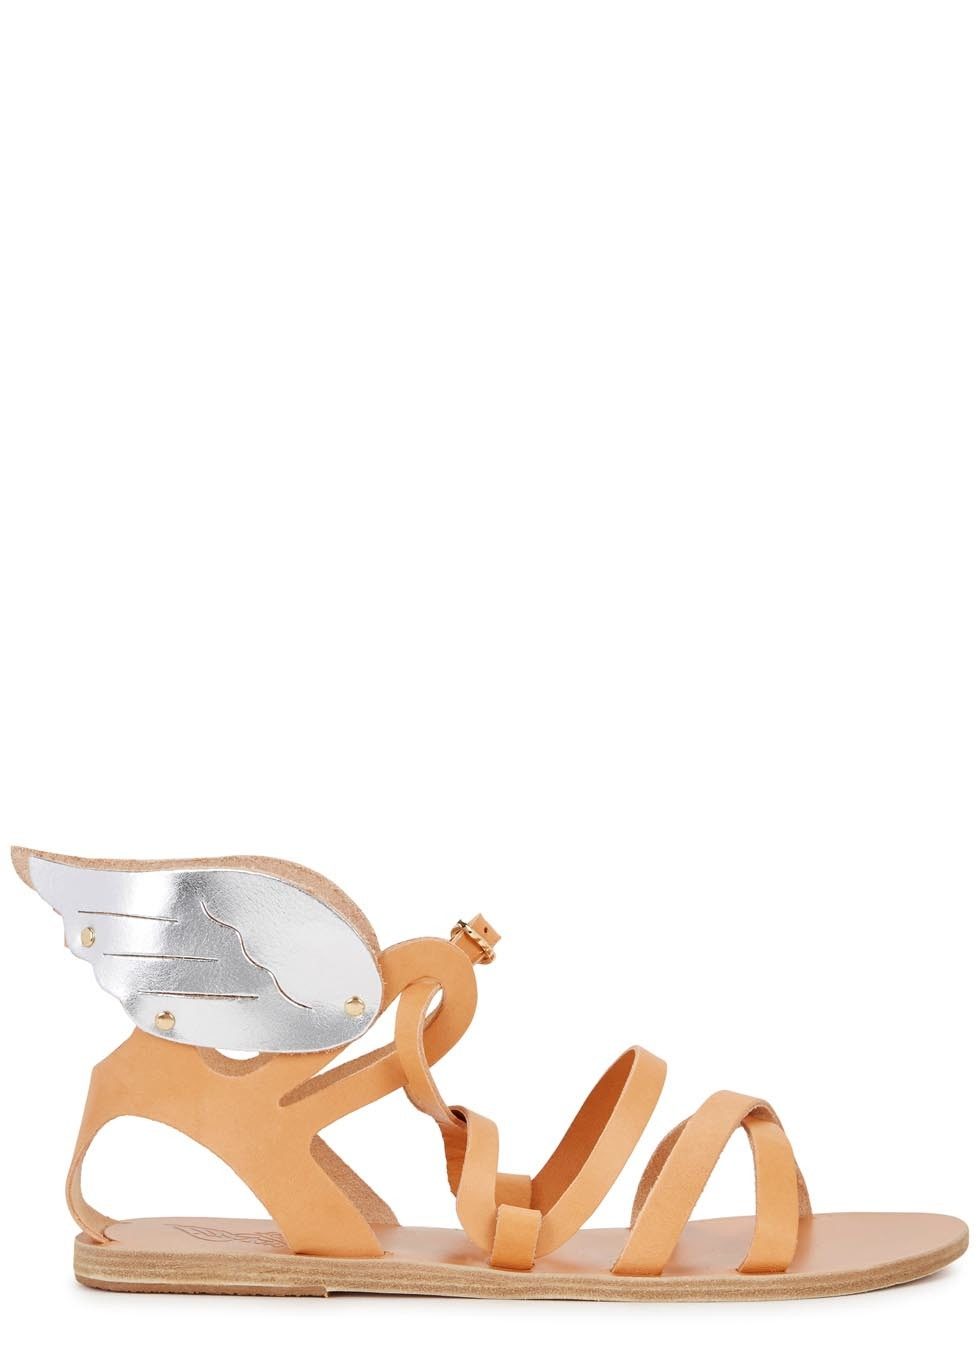 Nephele Light Brown Leather Sandals - predominant colour: bright orange; secondary colour: silver; occasions: casual; material: leather; heel height: flat; heel: standard; toe: open toe/peeptoe; style: strappy; finish: plain; pattern: plain; season: s/s 2016